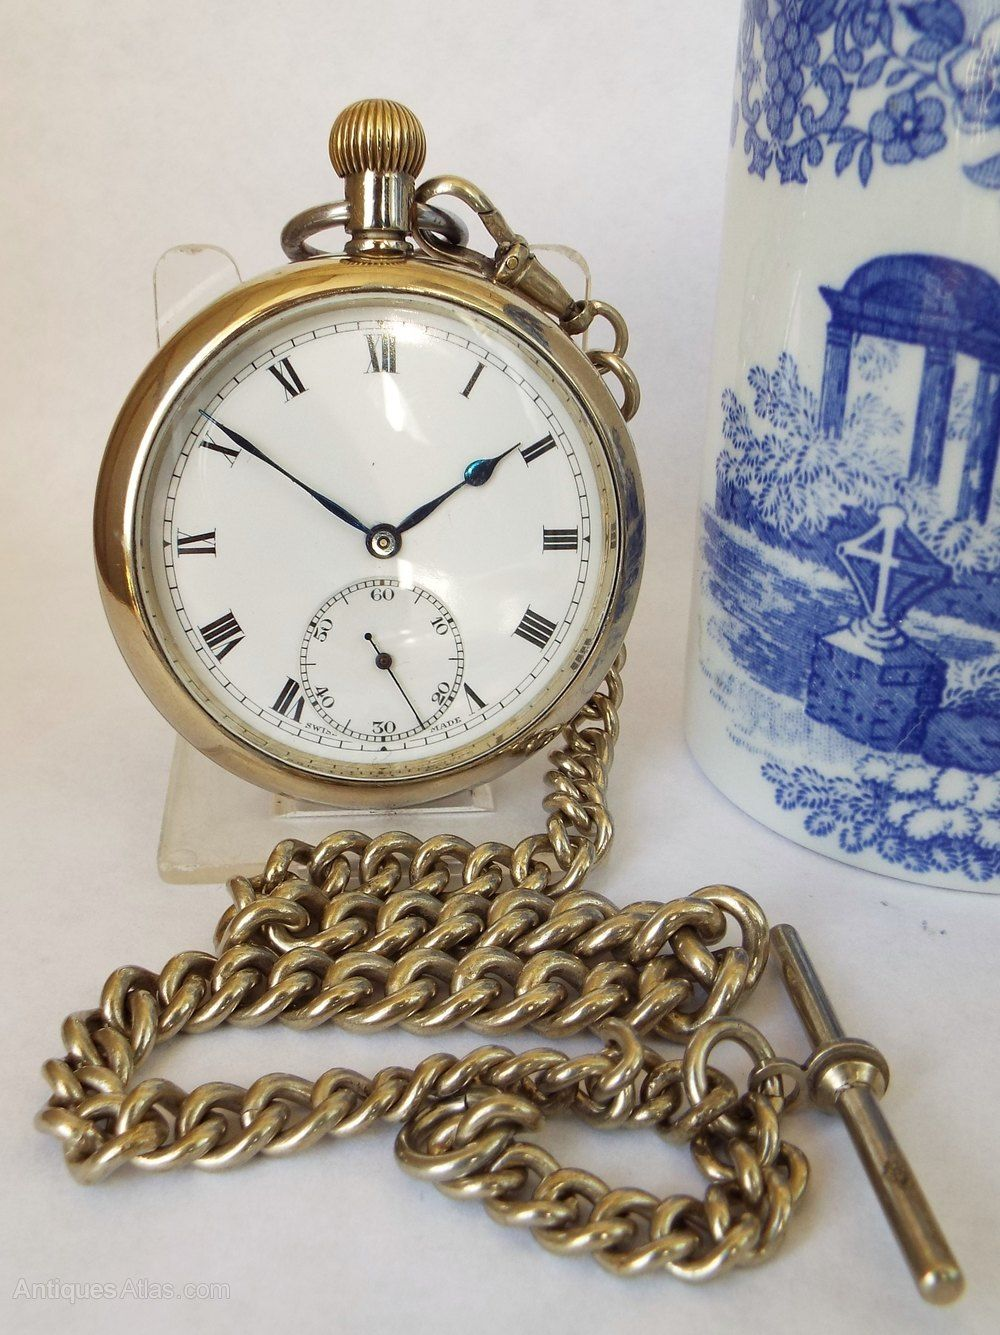 Antiques Atlas 1920s Swiss Pocket Watch And Chain Swiss Pocket Watches Pocket Watch Antique Pocket Watch Chain